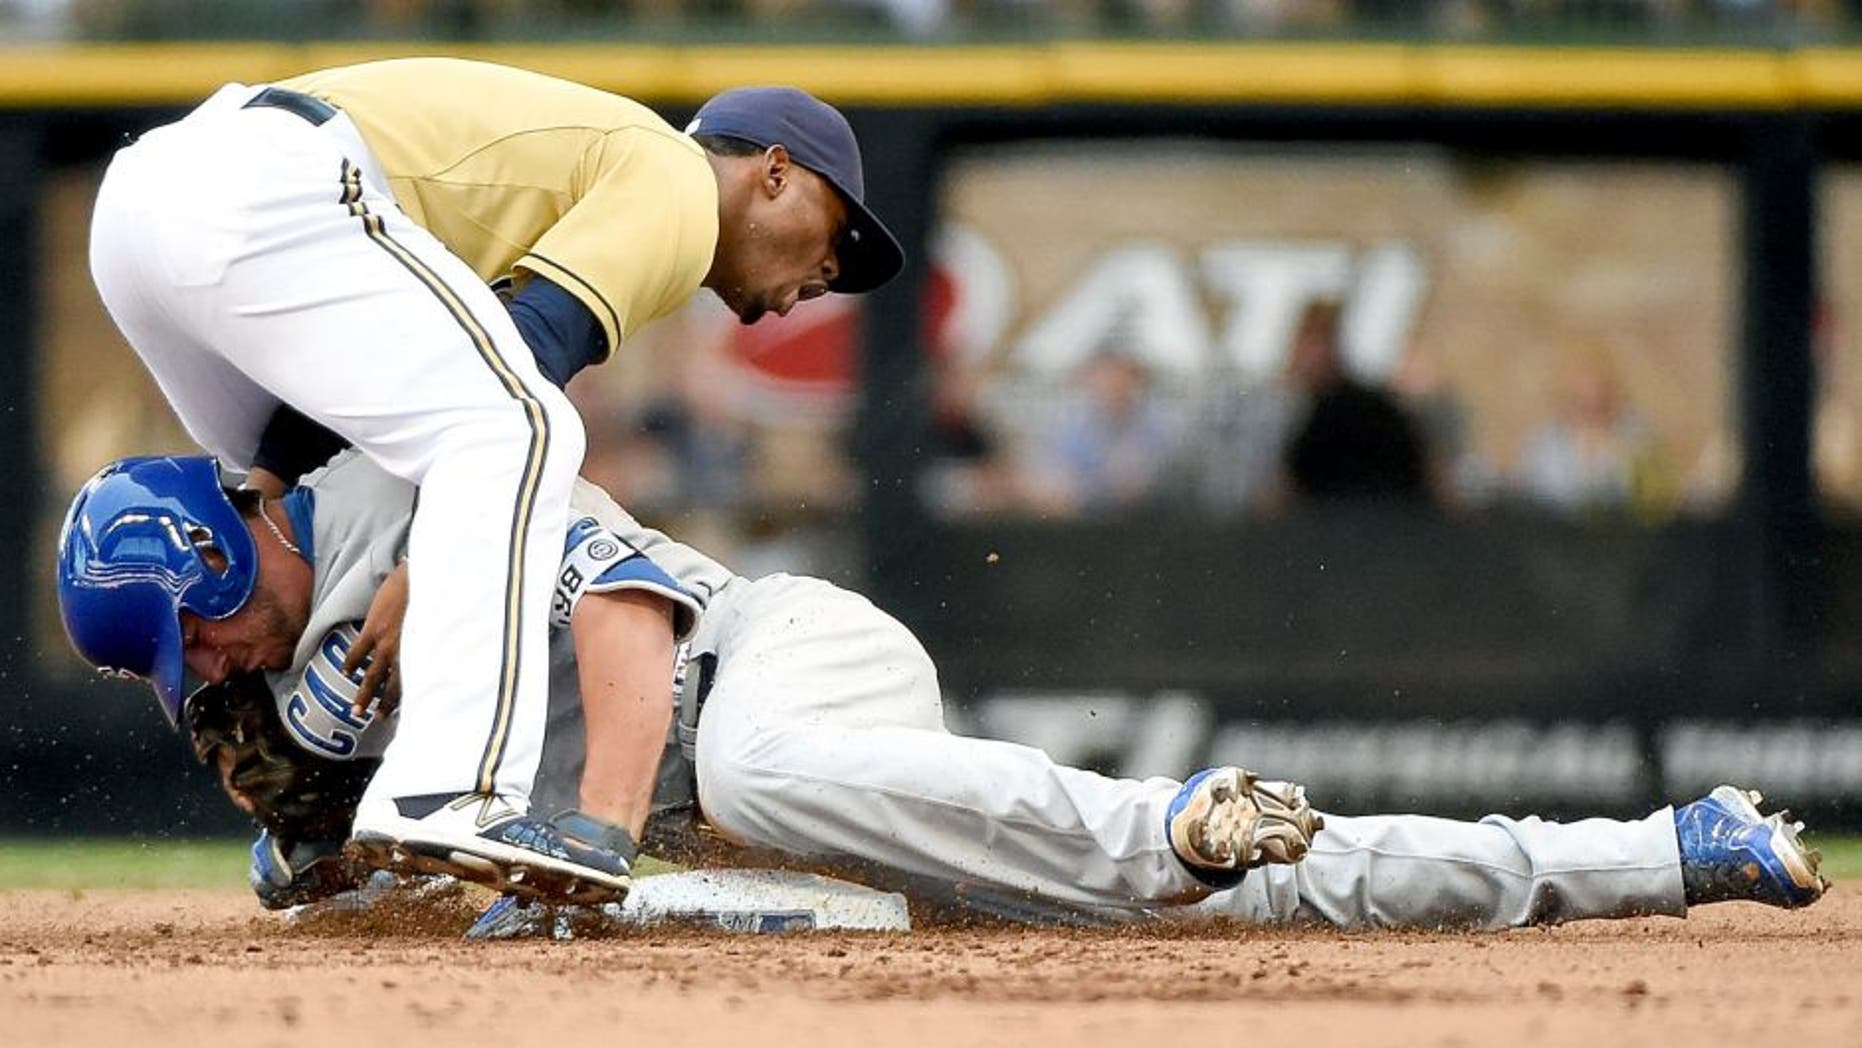 Aug 2, 2015; Milwaukee, WI, USA; Chicago Cubs third baseman Kris Bryant (17) slides safely into 2nd base before tag by Milwaukee Brewers shortstop Jean Segura (9) in the fifth inning at Miller Park. Bryant was injured on the play and had to leave the game. Mandatory Credit: Benny Sieu-USA TODAY Sports